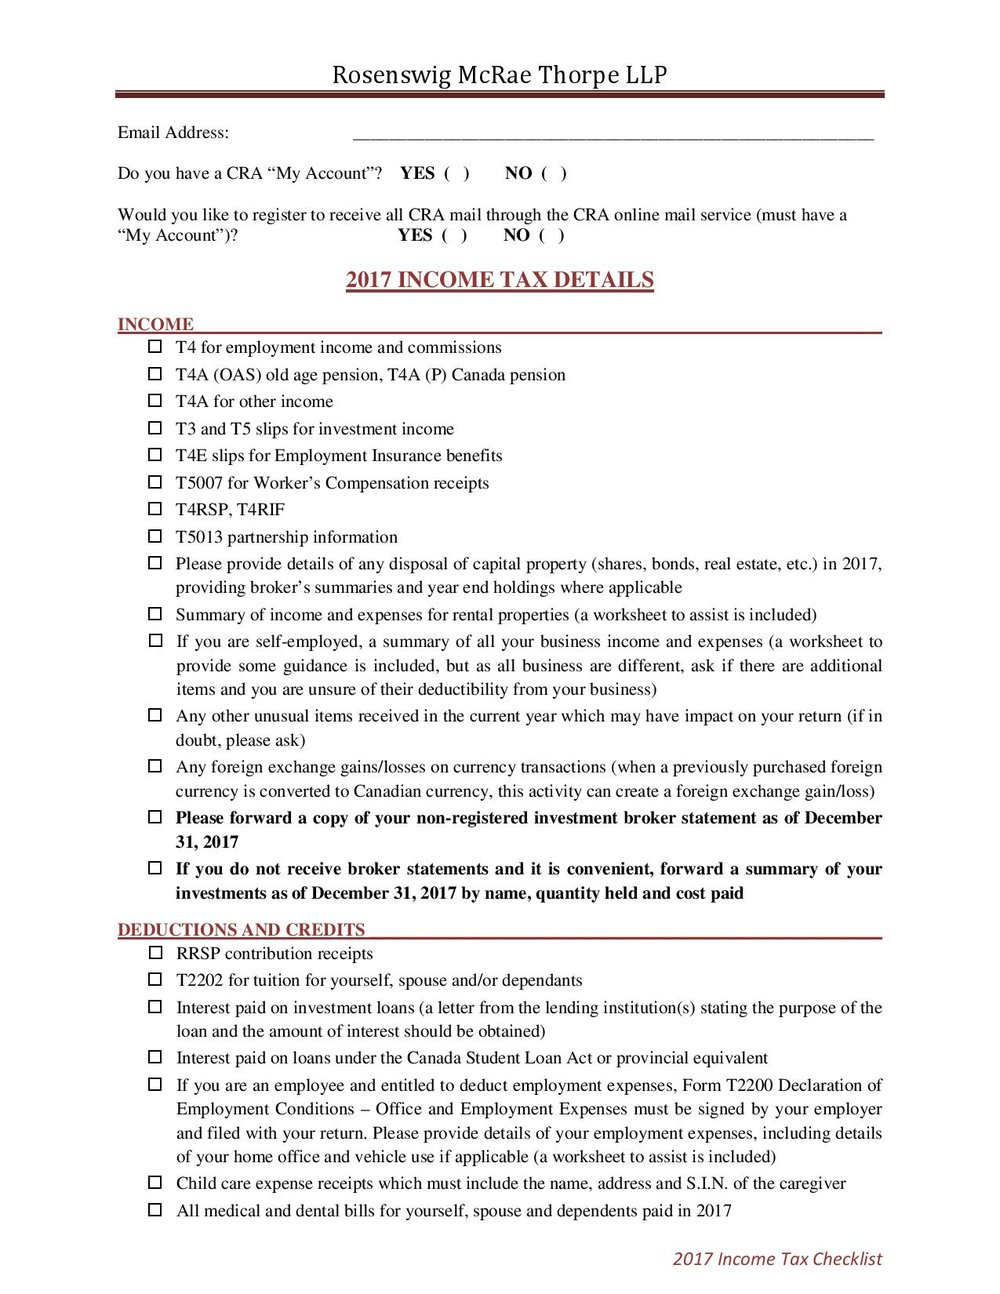 2017 PERSONAL INCOME TAX CHECKLIST (1)-page-003.jpg